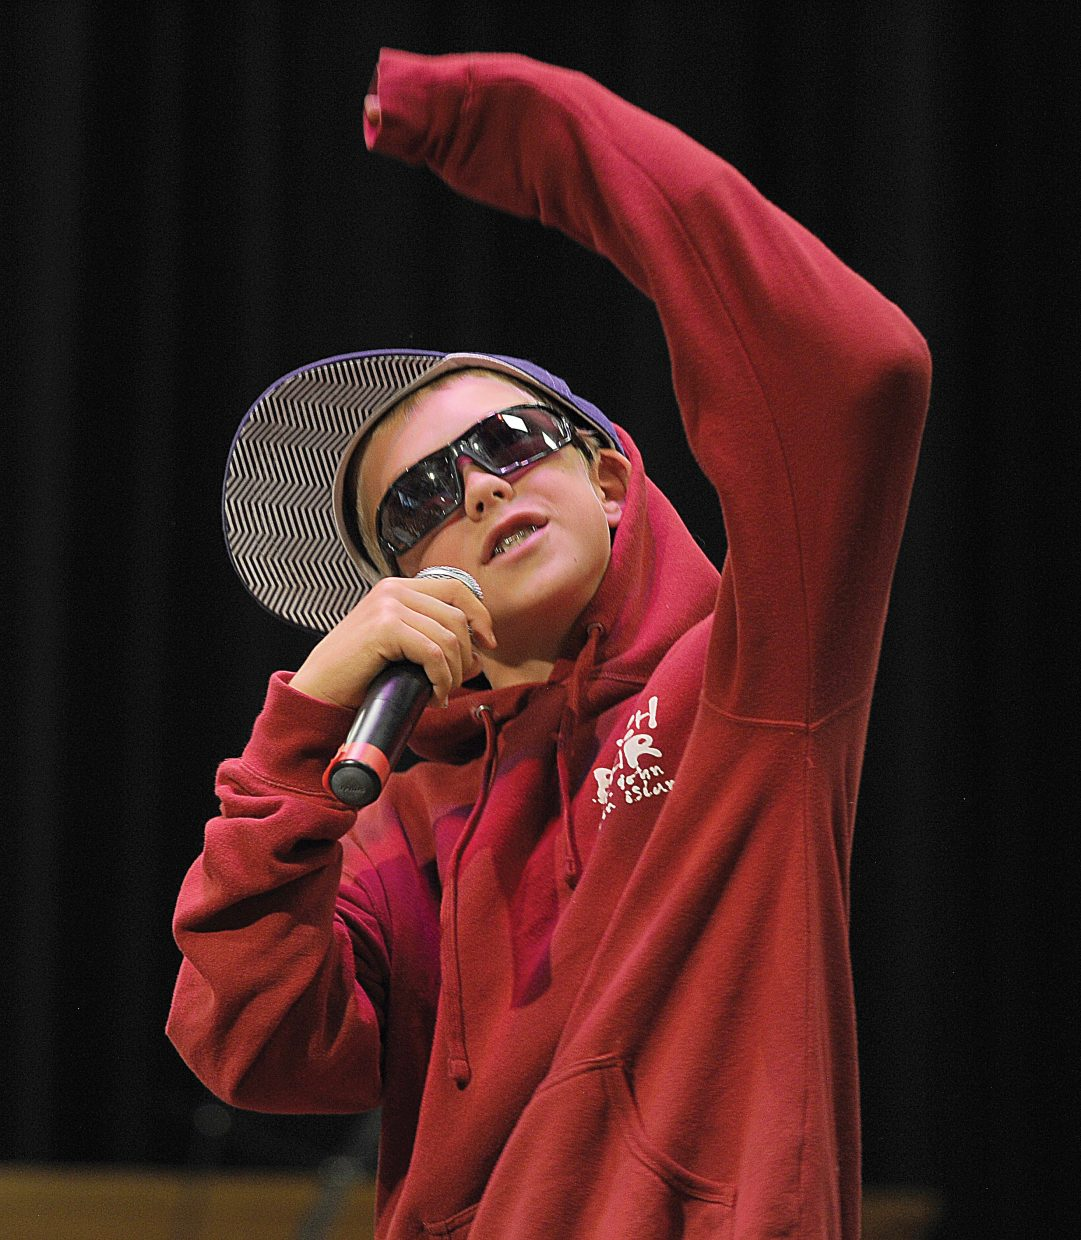 """Soda Creek Elementary School student Jack Colfer performs a vocal parody titled """"Never Say Never"""" on Wednesday morning as part of the school's talent show."""